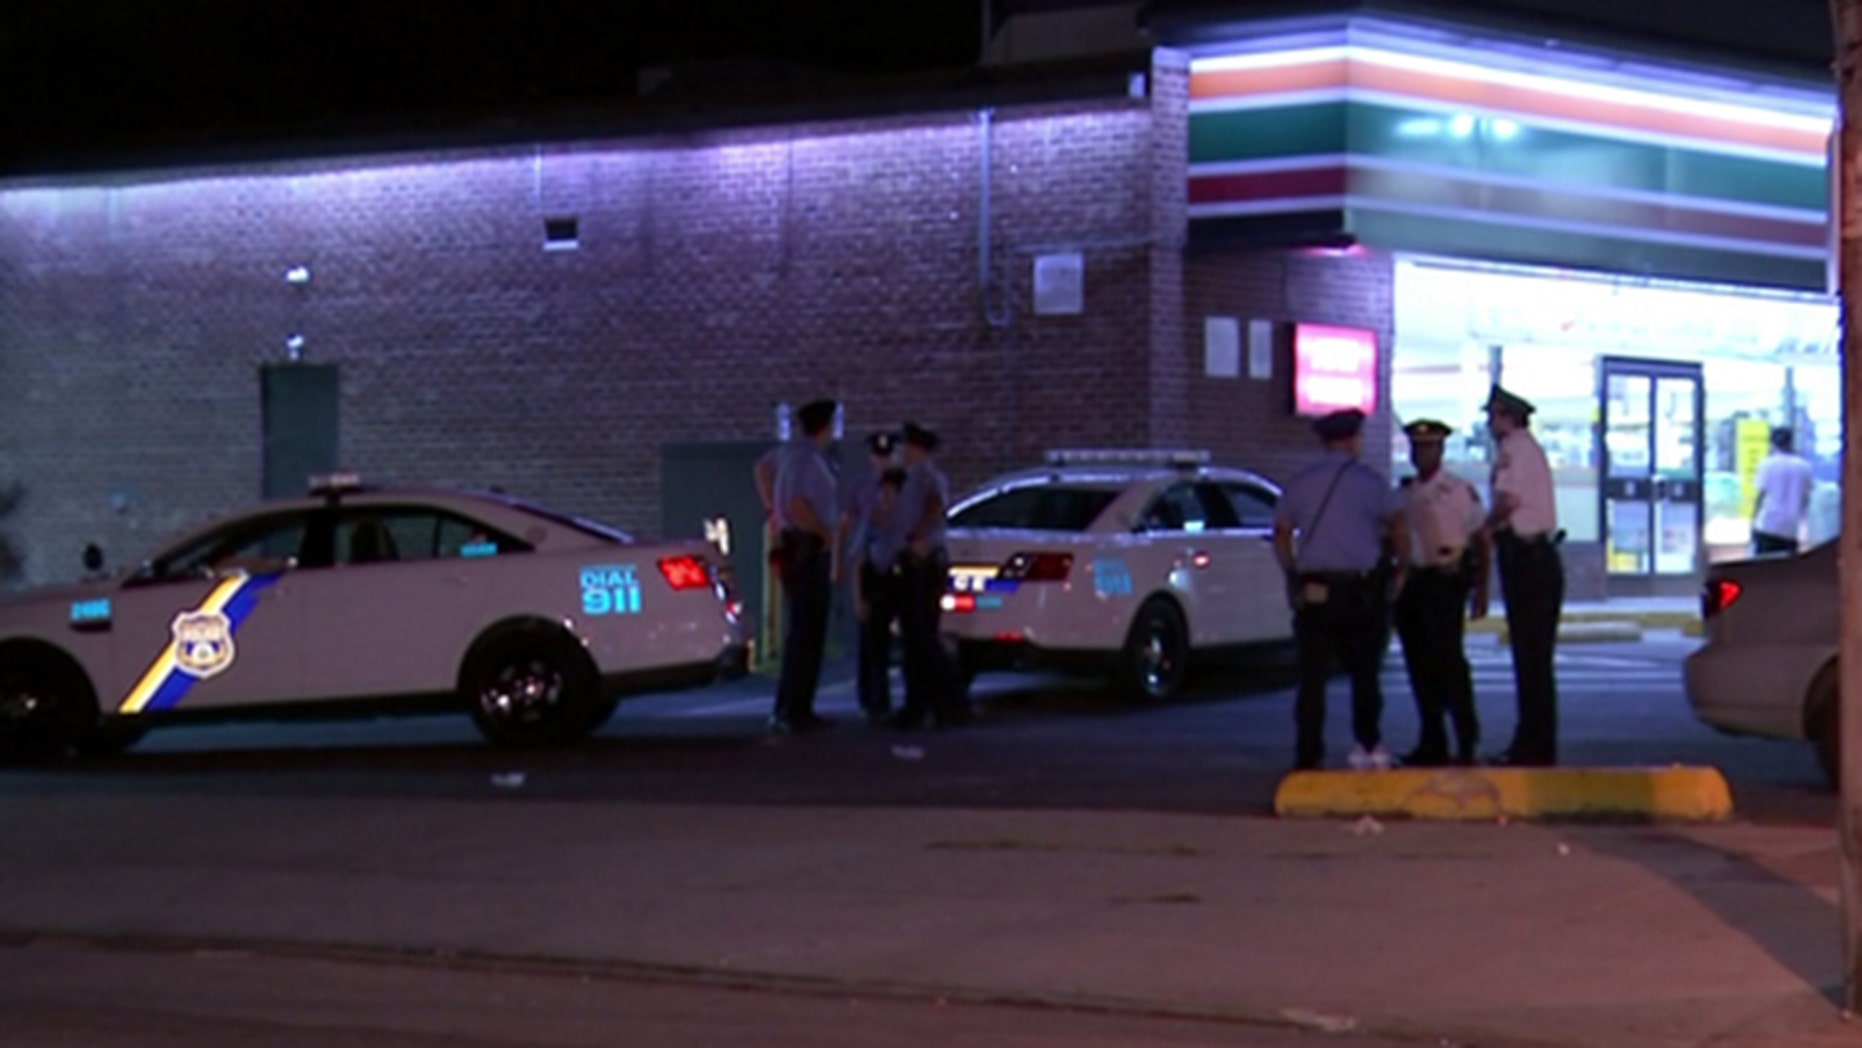 Philadelphia police say a 13-year-old boy walked home after he was shot in the foot late Sunday near convenience store in the northern part of the city.